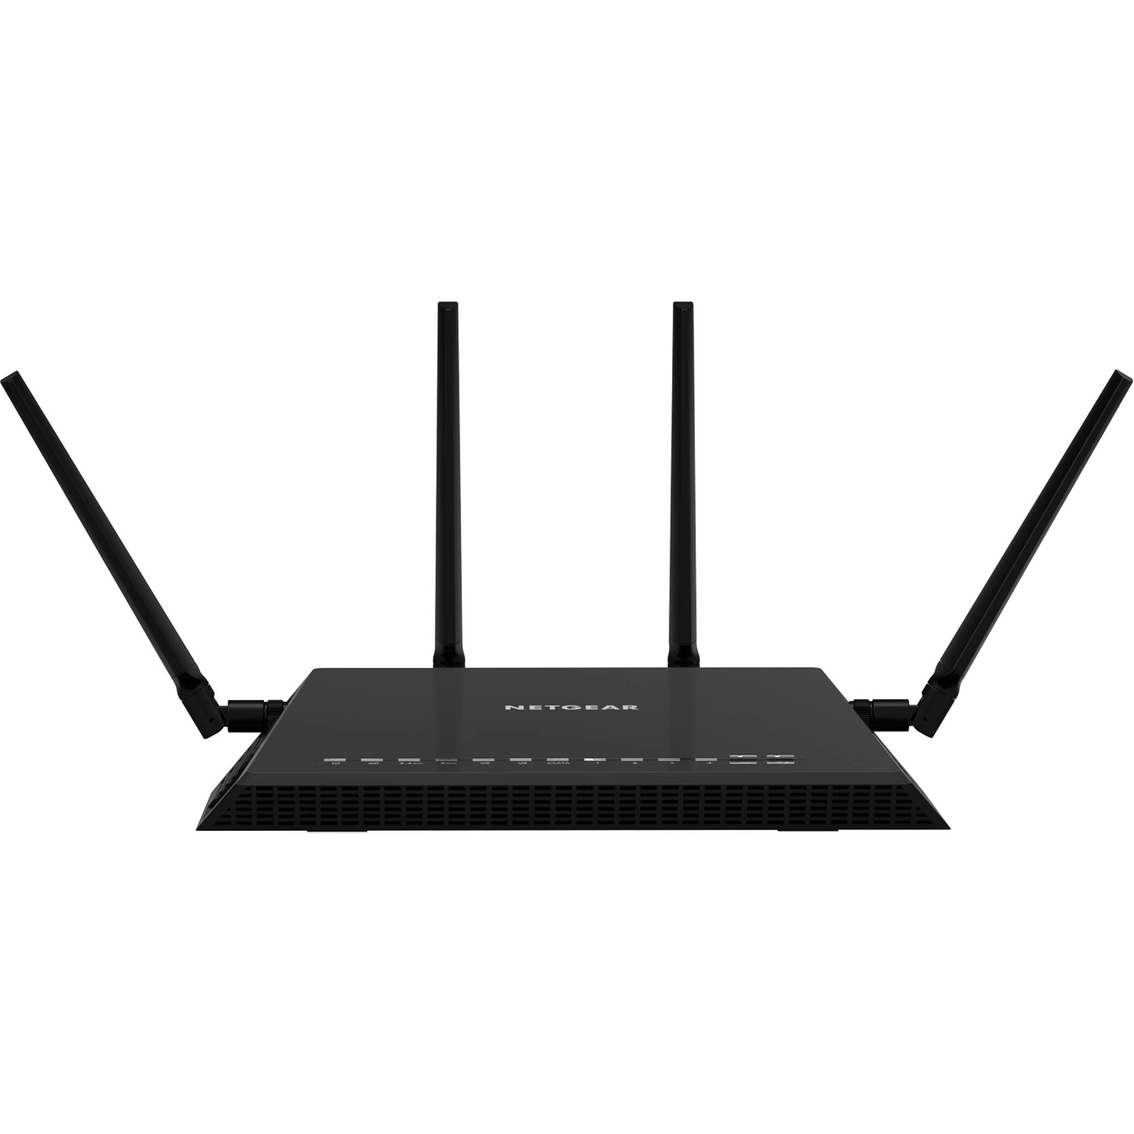 Netgear Nighthawk X4s Ac2600 Smart Wifi Router | Hubs